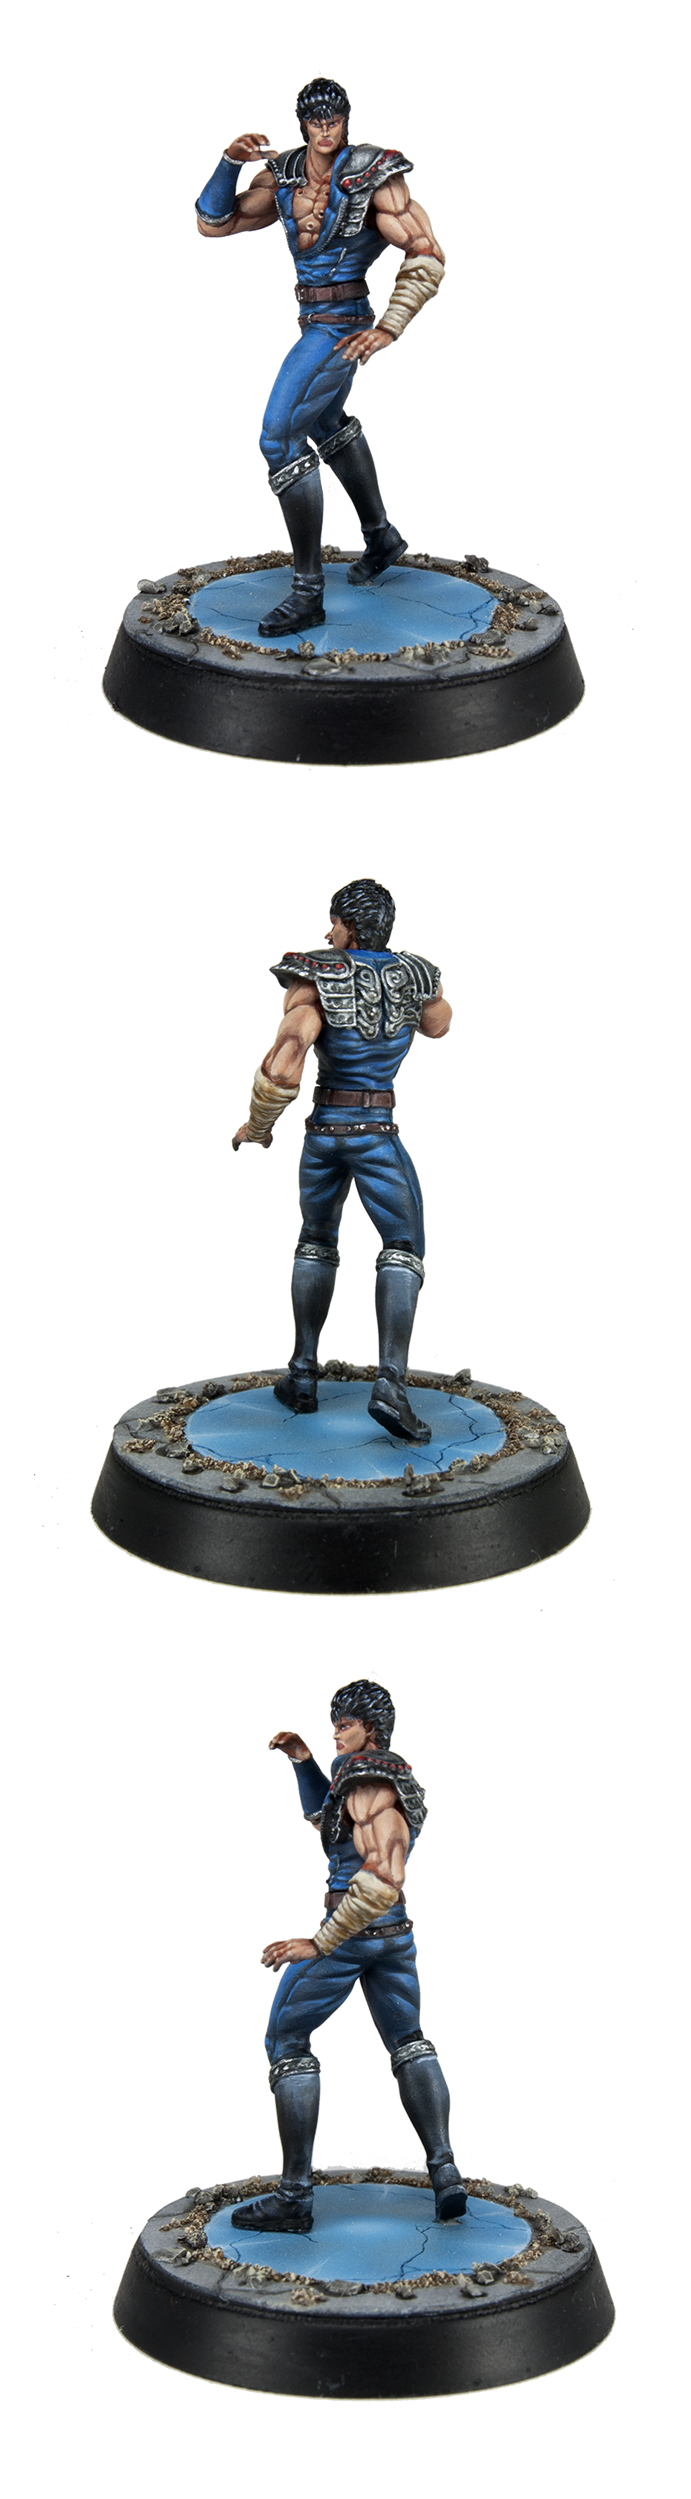 Kenshiro from Fist Of The North Star